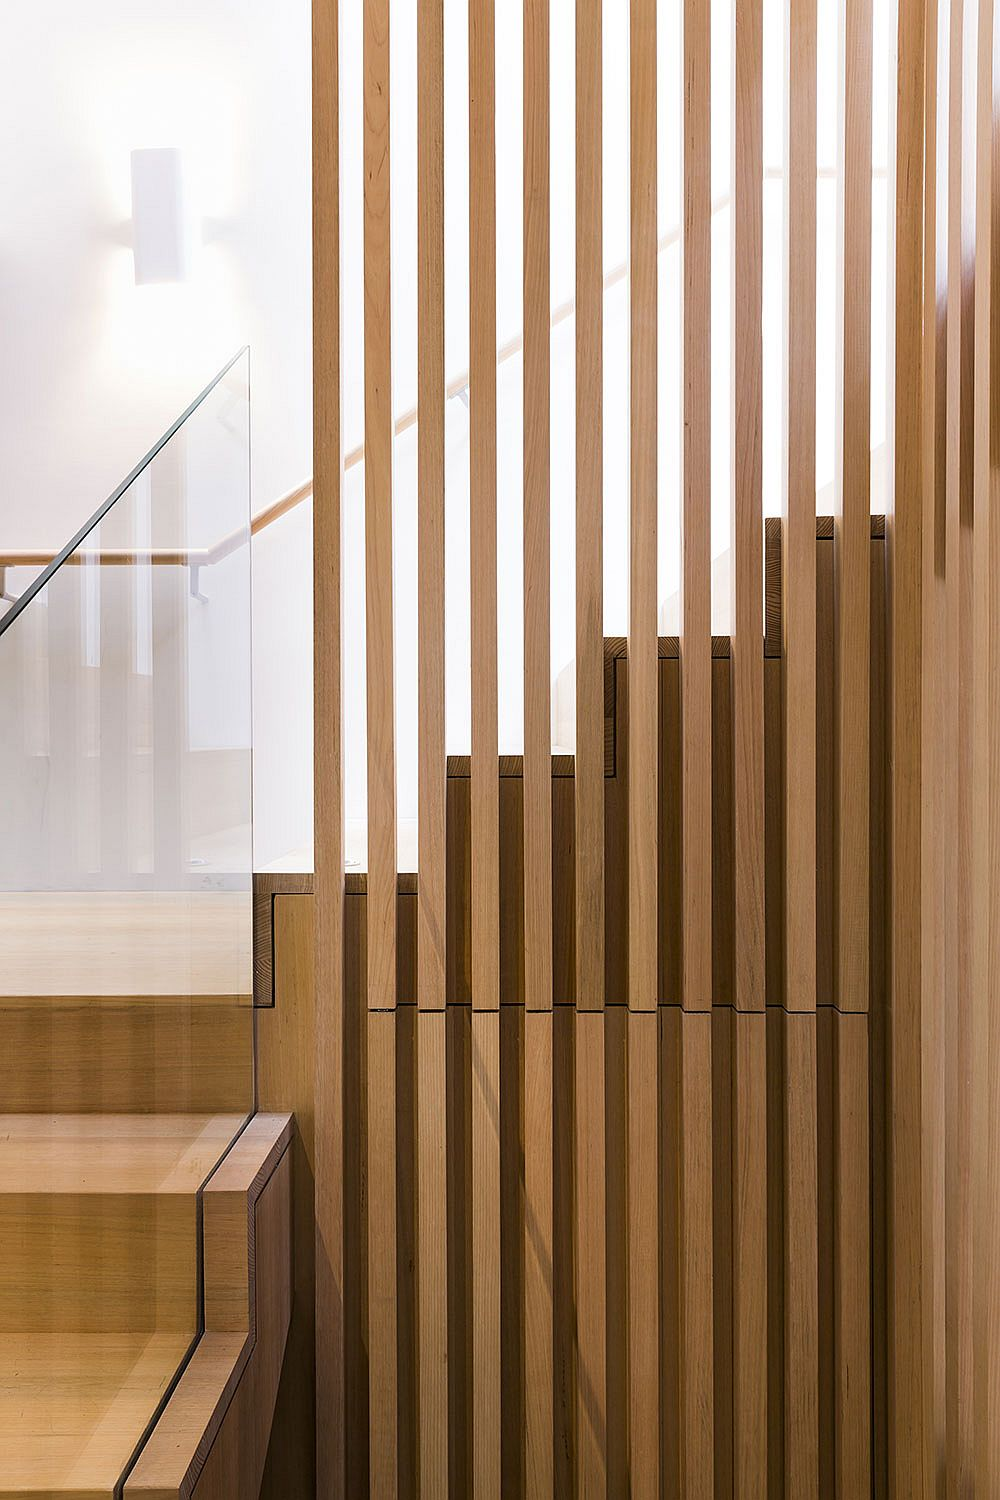 Intricate and contemporary design of the staircase sets the tone for the rest of the house